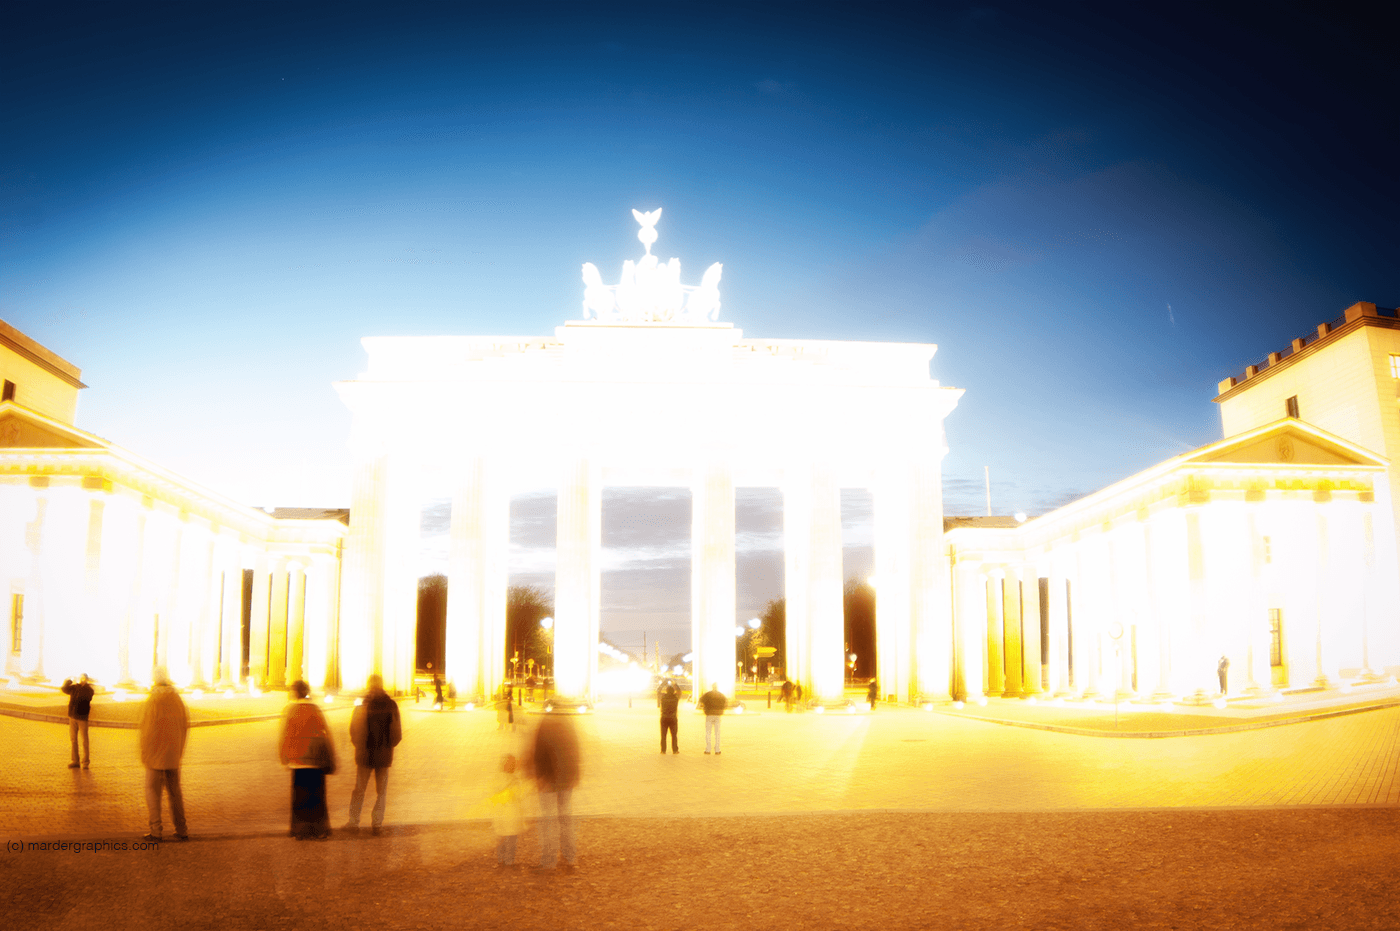 Brandenburger Tor, photo by mardergraphics